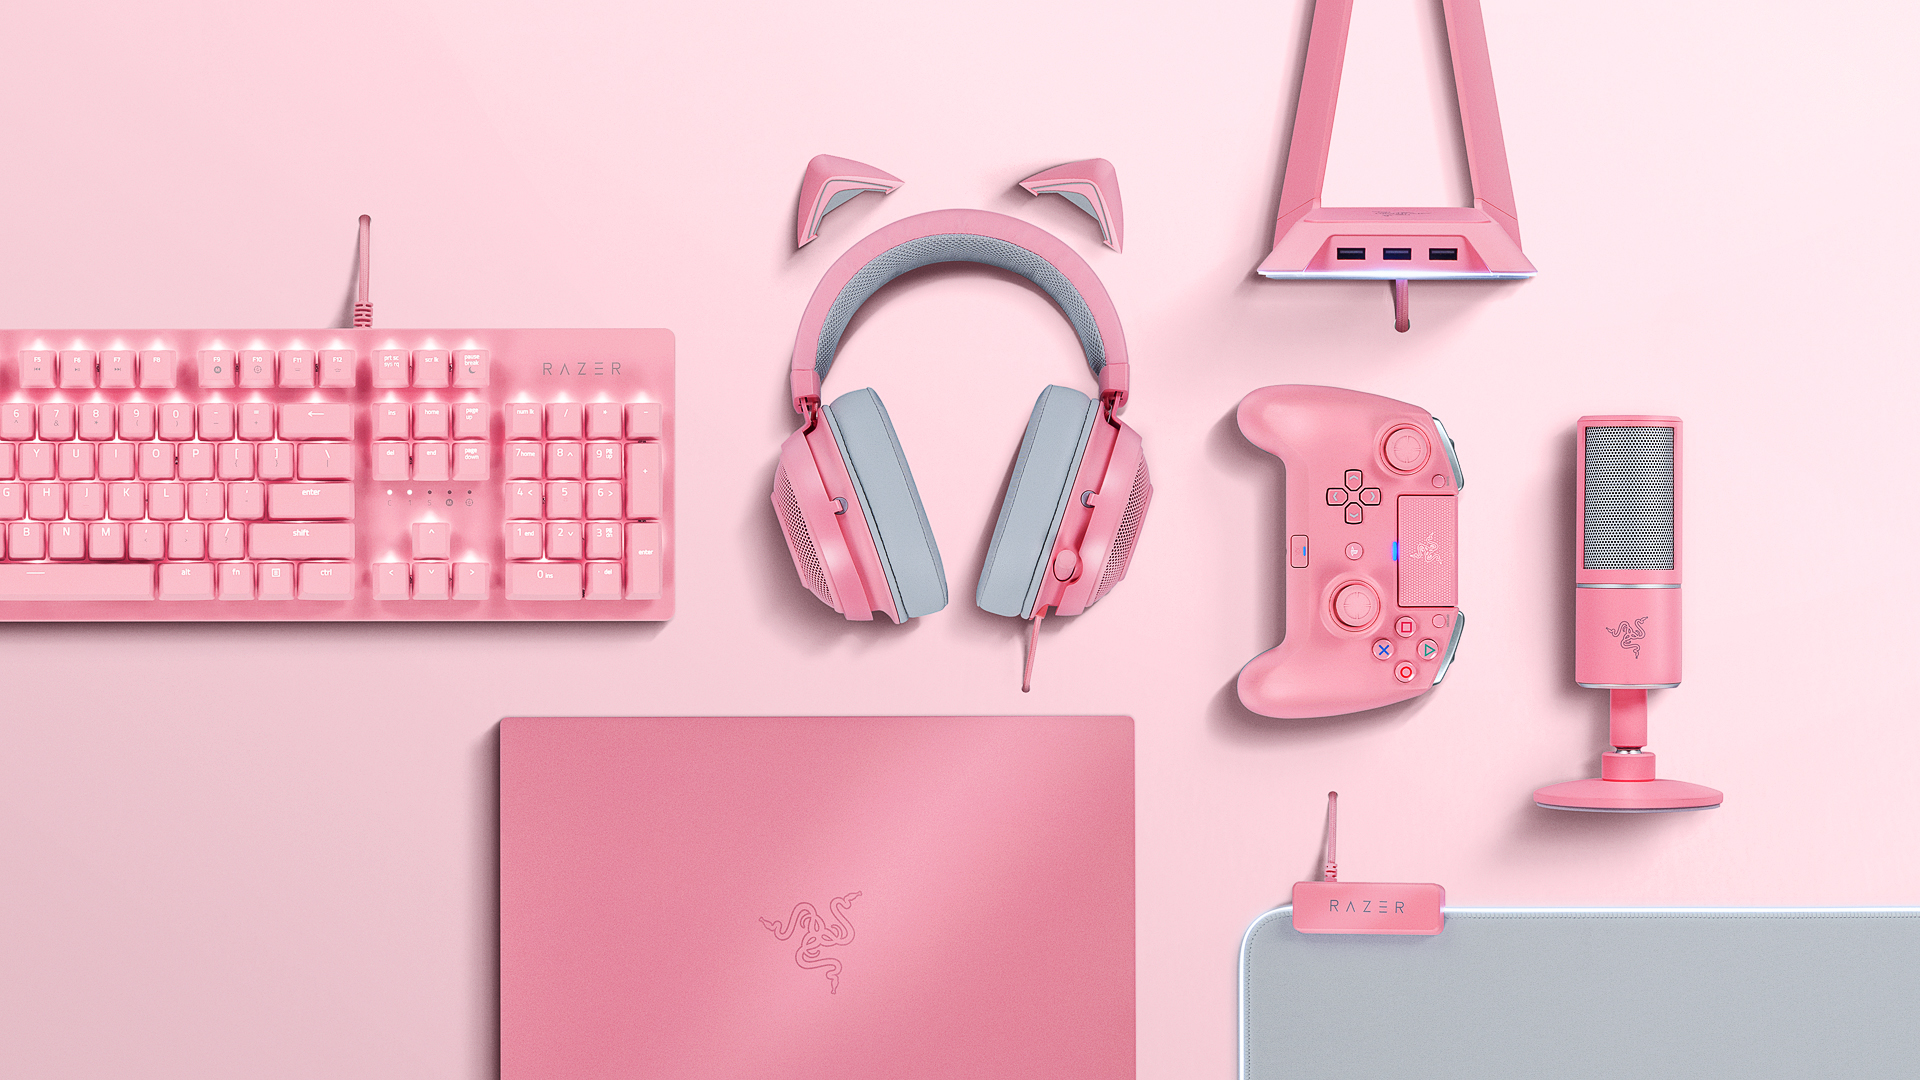 Pink keyboard, headphones, game controller and laptop made by Razer